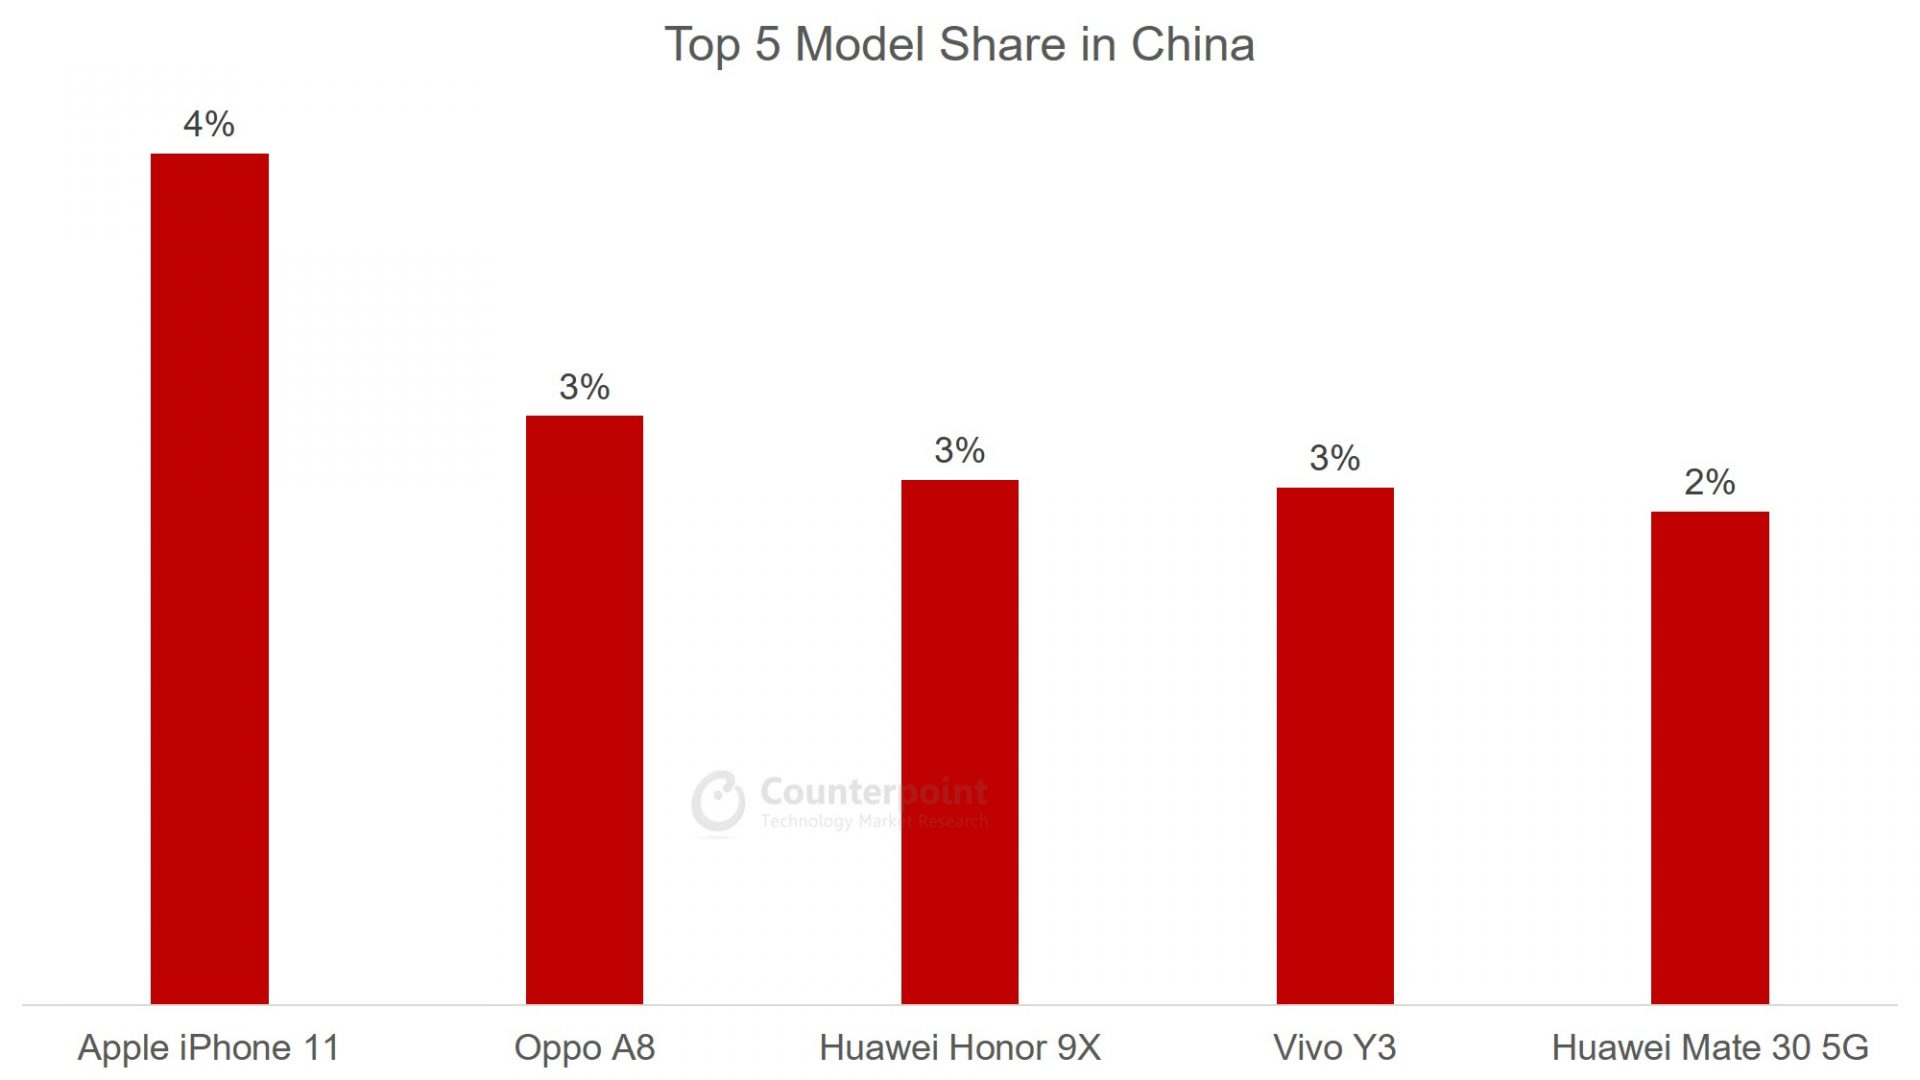 Counterpoint: (Apr 2020) Top 5 Smartphone Model Share in China